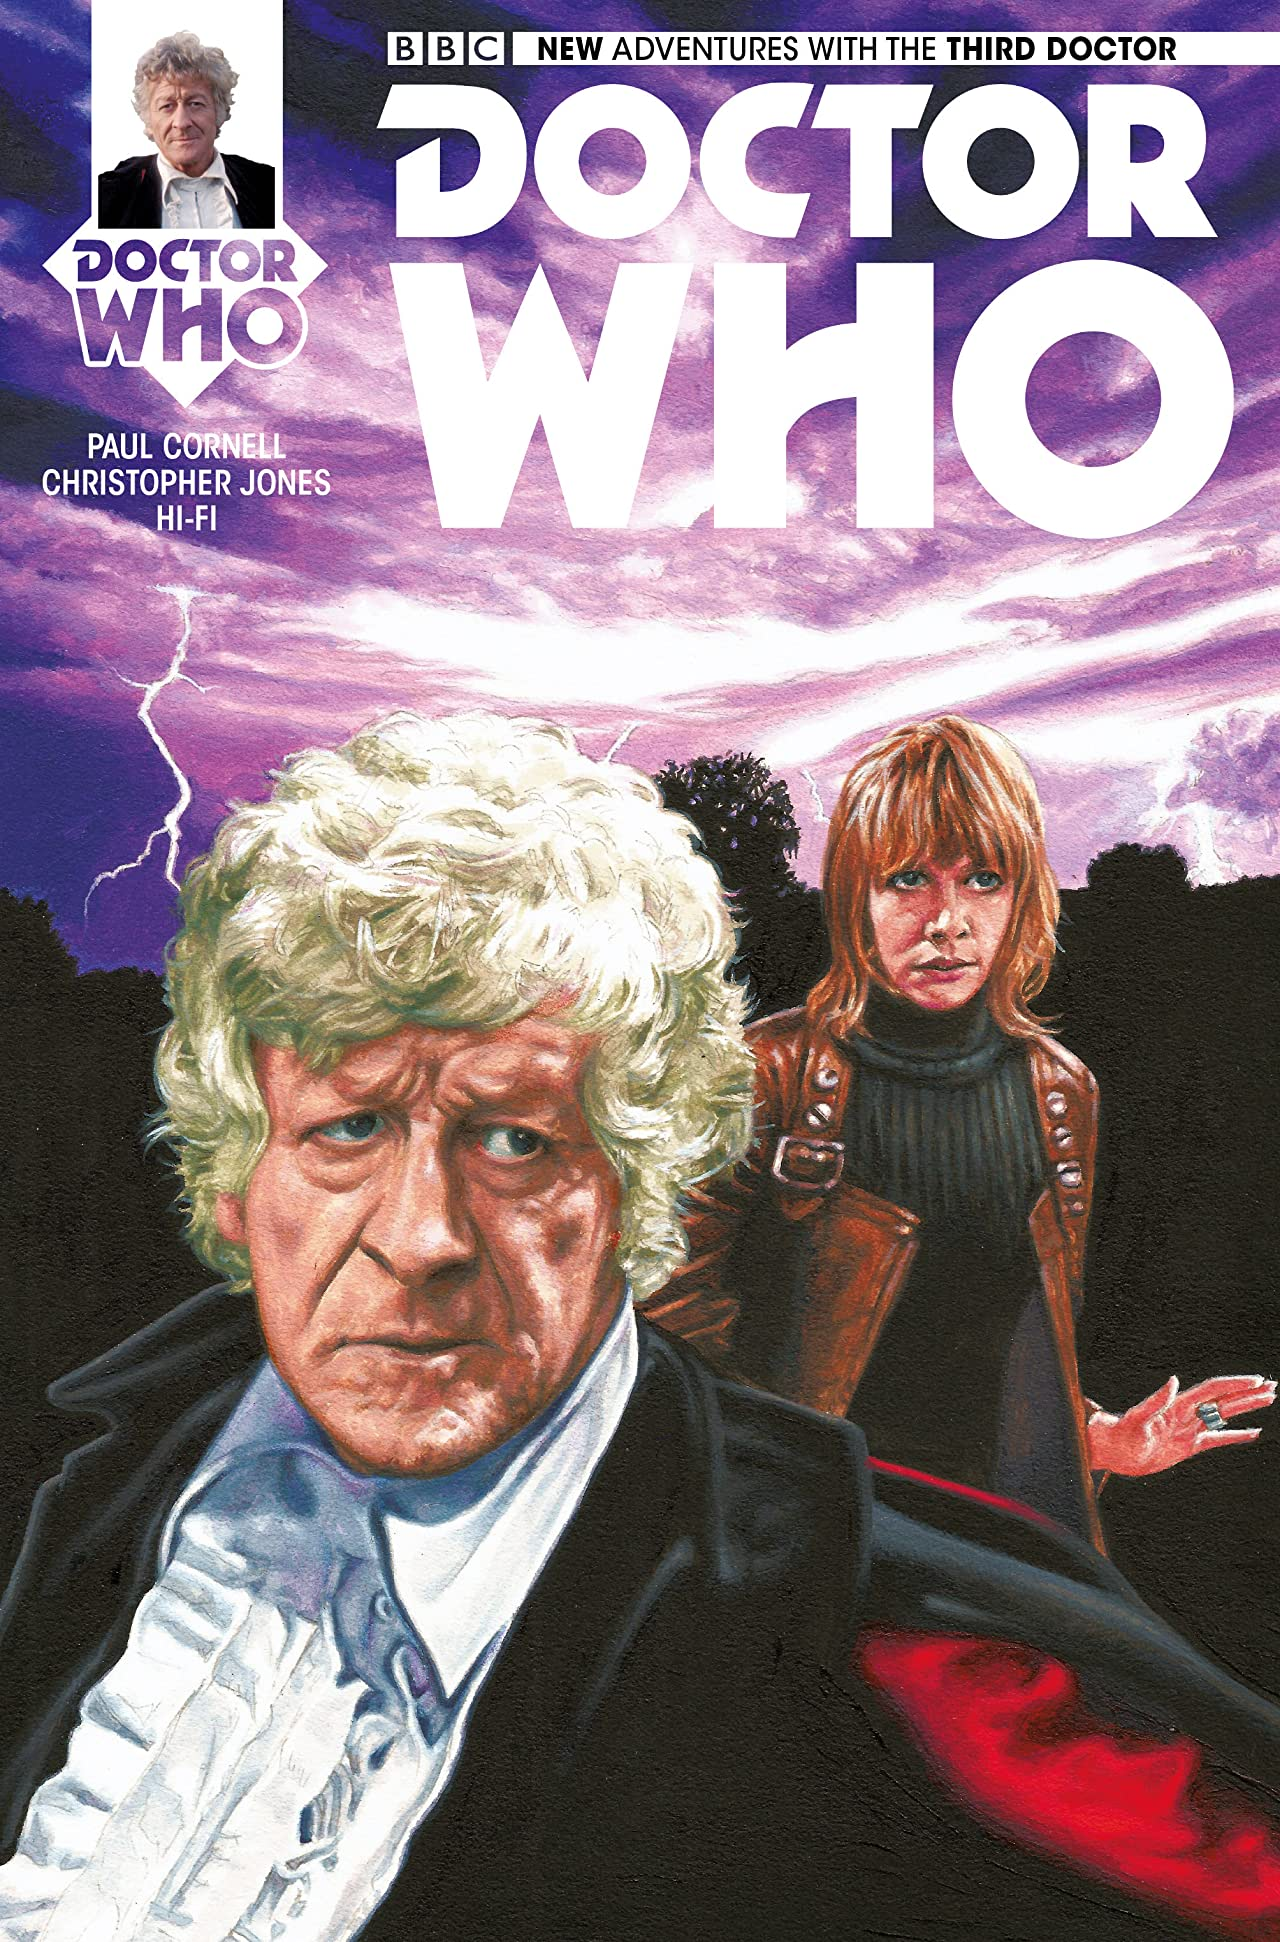 Doctor Who: The Third Doctor #4